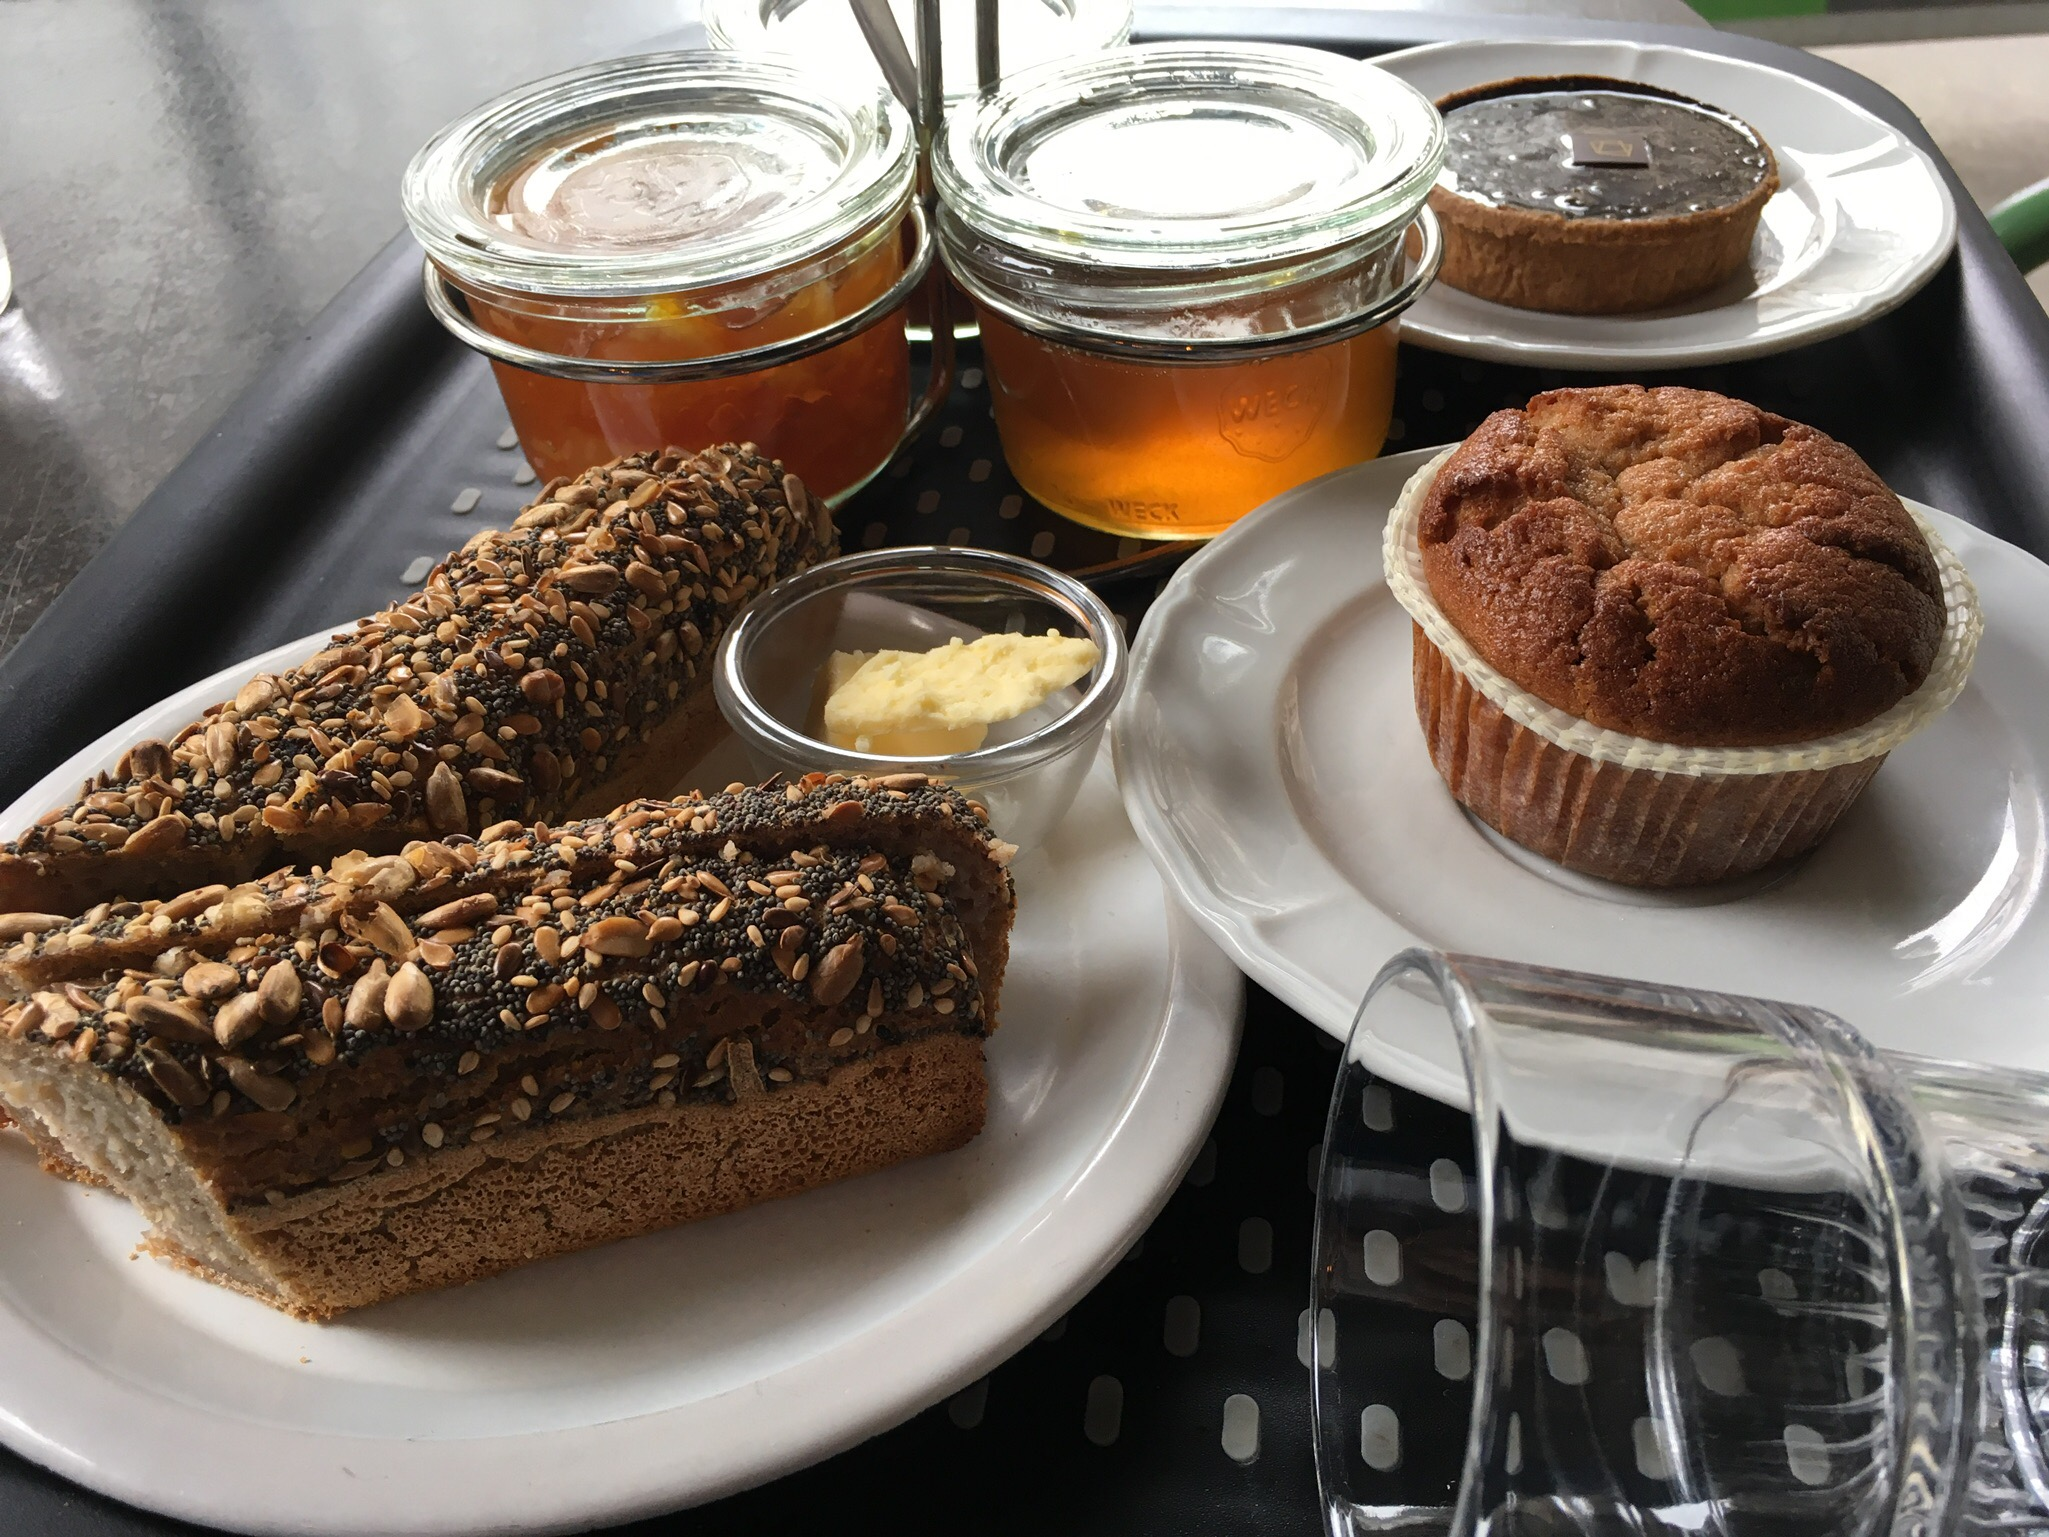 Assorted gluten-free breads and jams